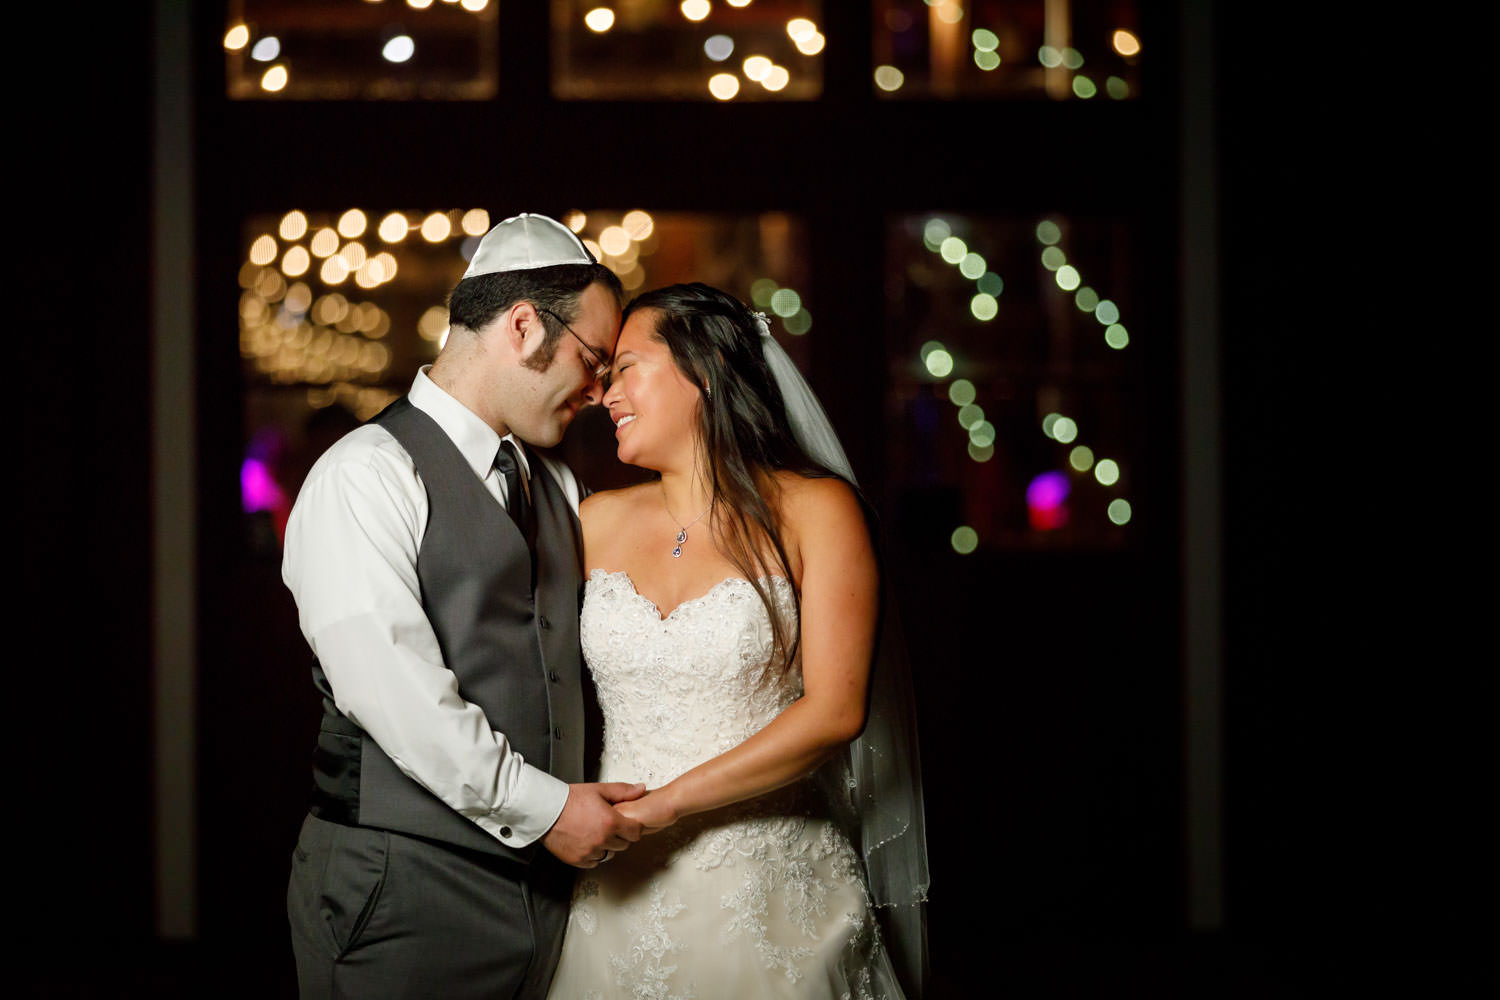 Night time photo with jewish bride and groom with twinkle lights blurred in background